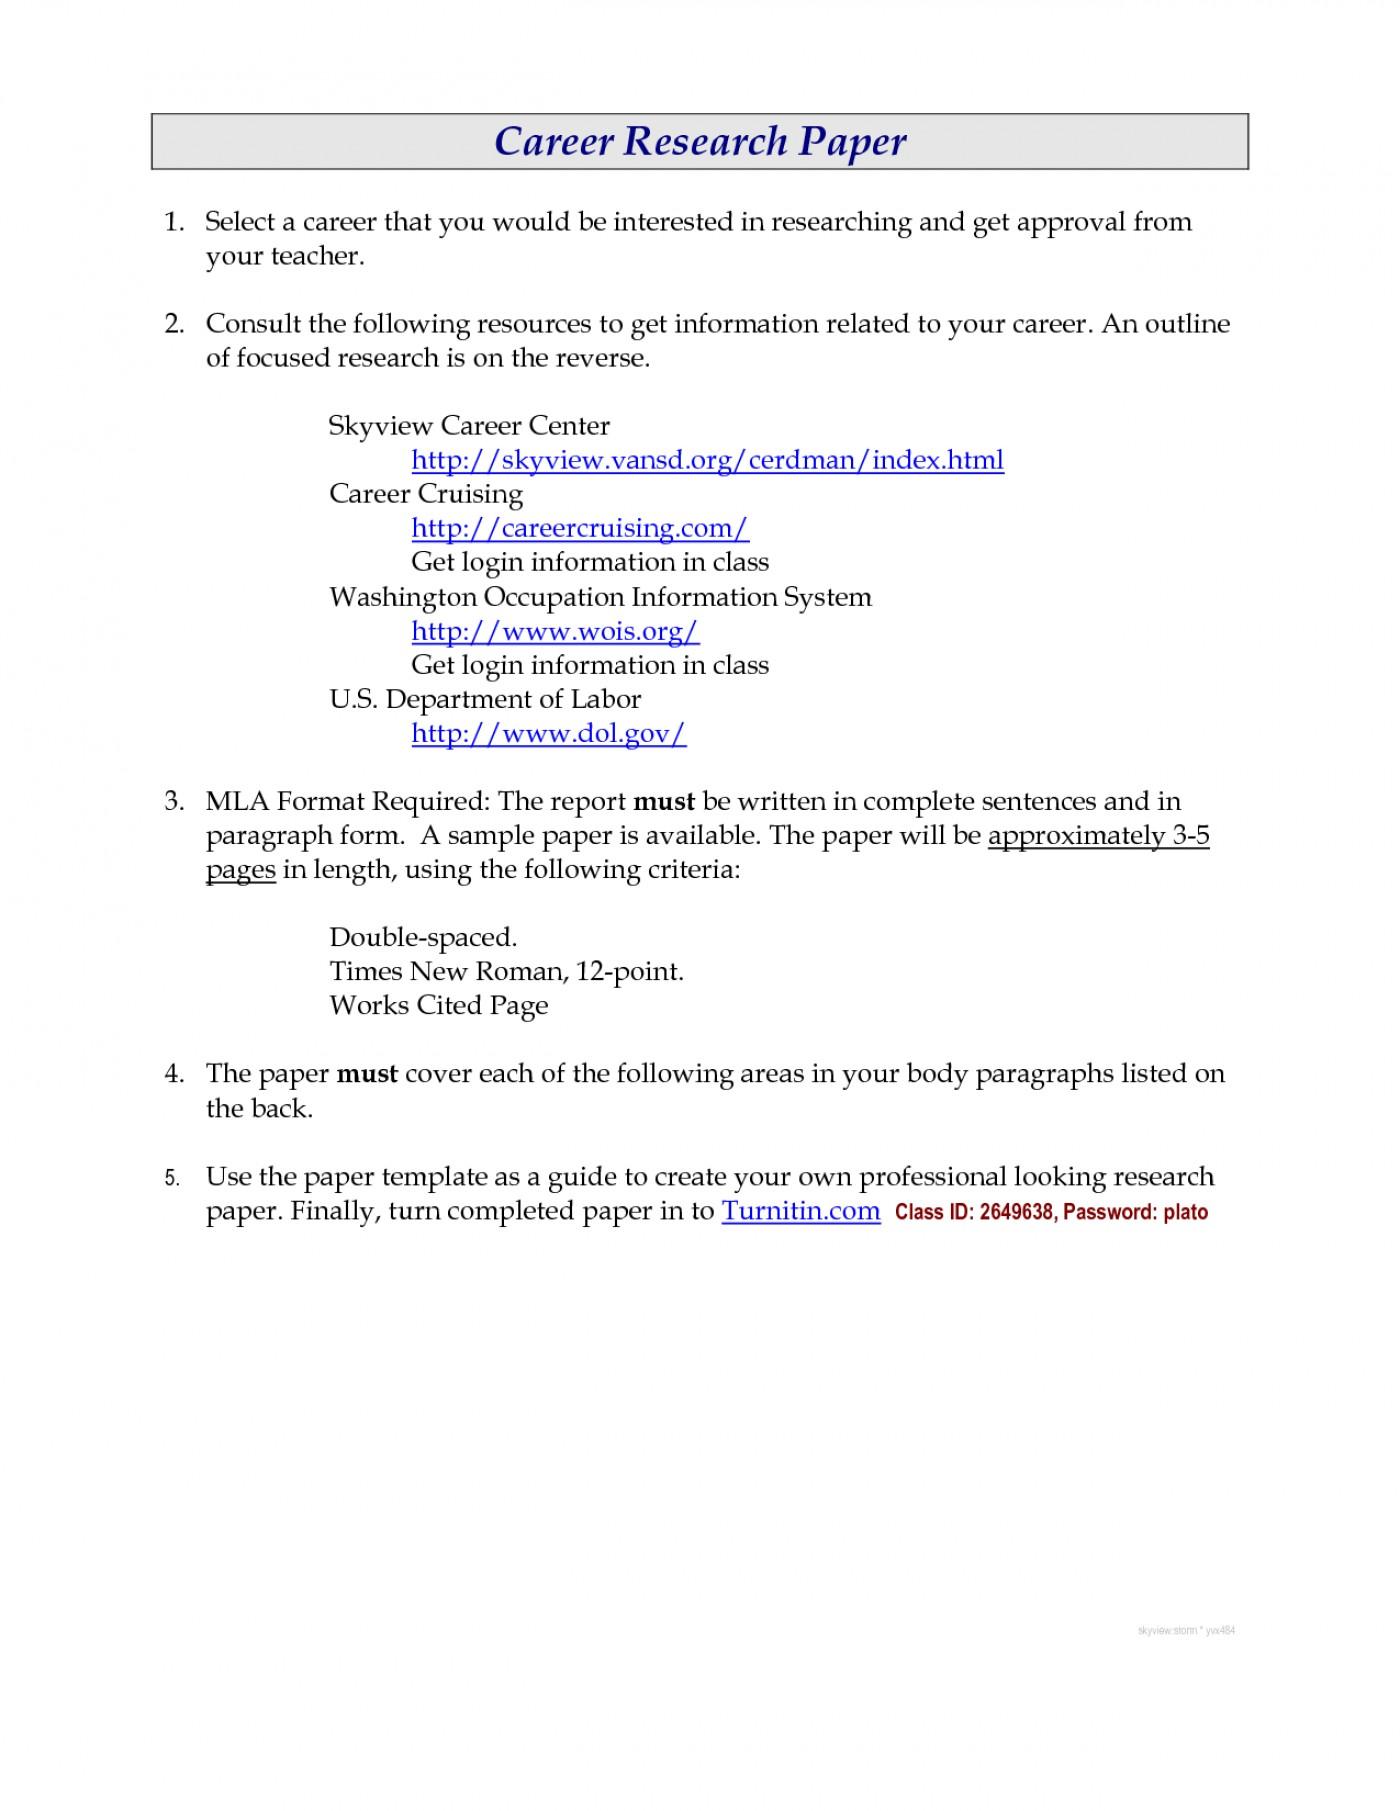 010 Research Paper Career Outline 477648 Unusual Template 1400